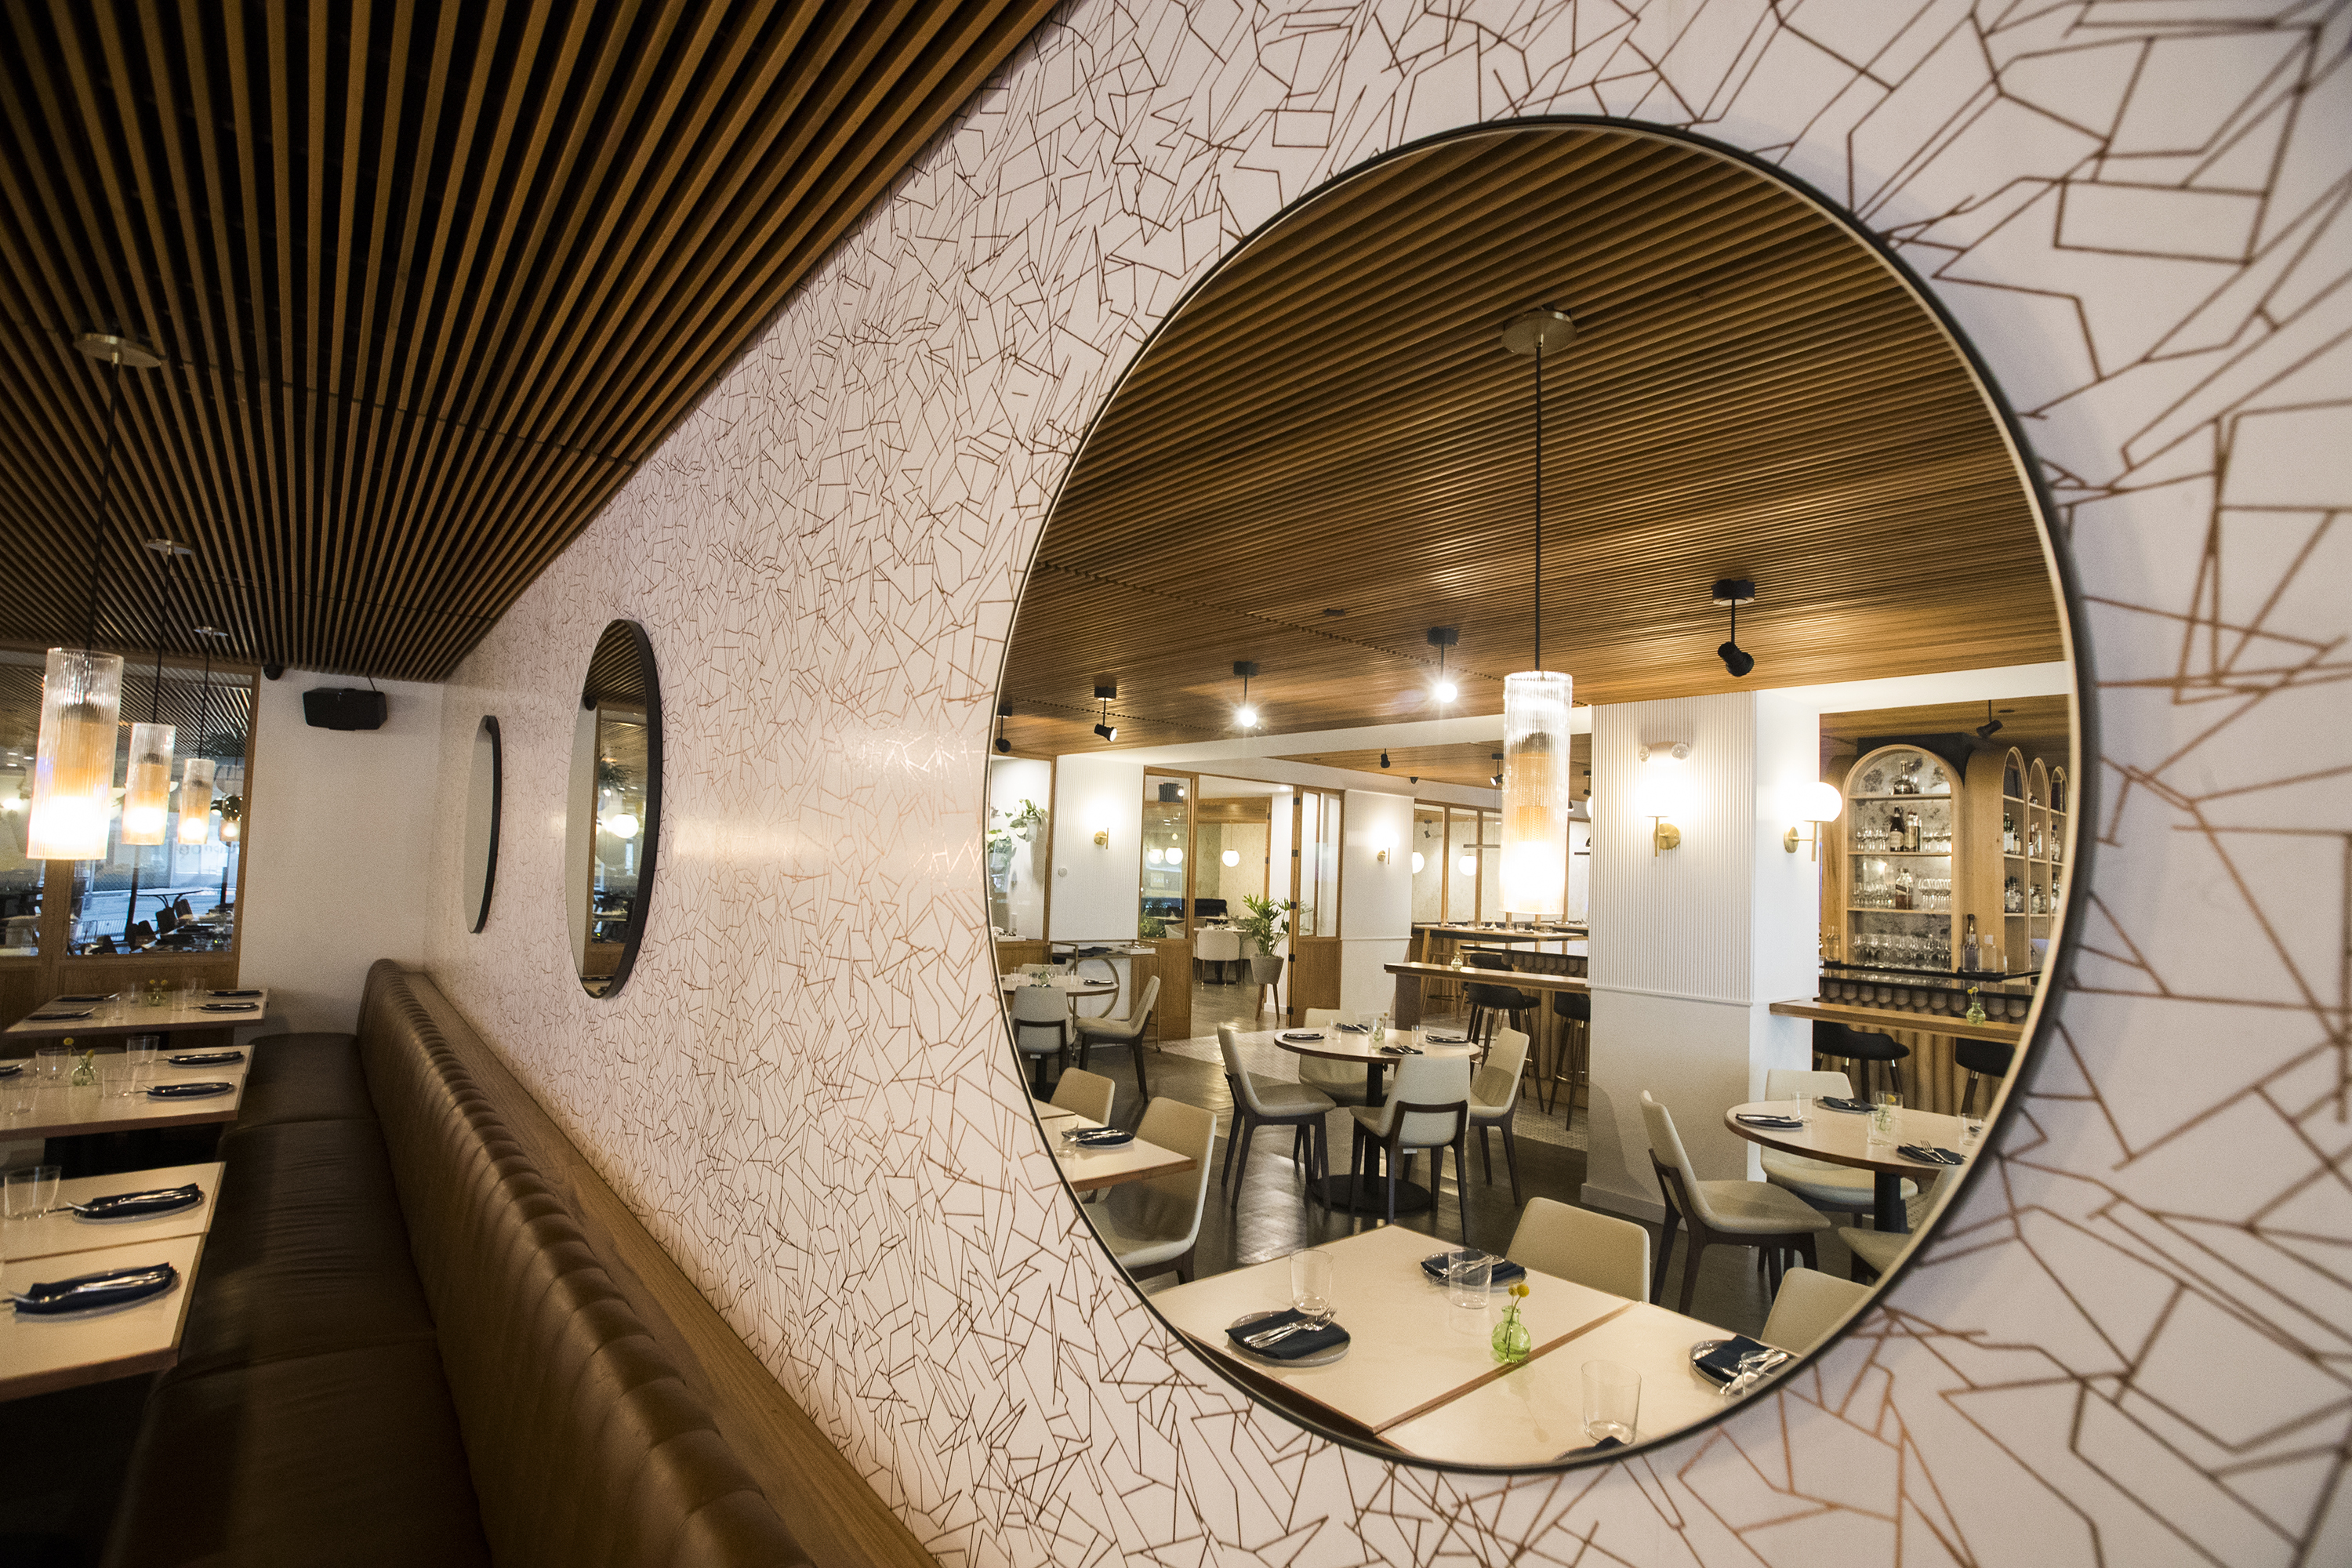 The dining room at Spice Finch is reflected in a mirror.